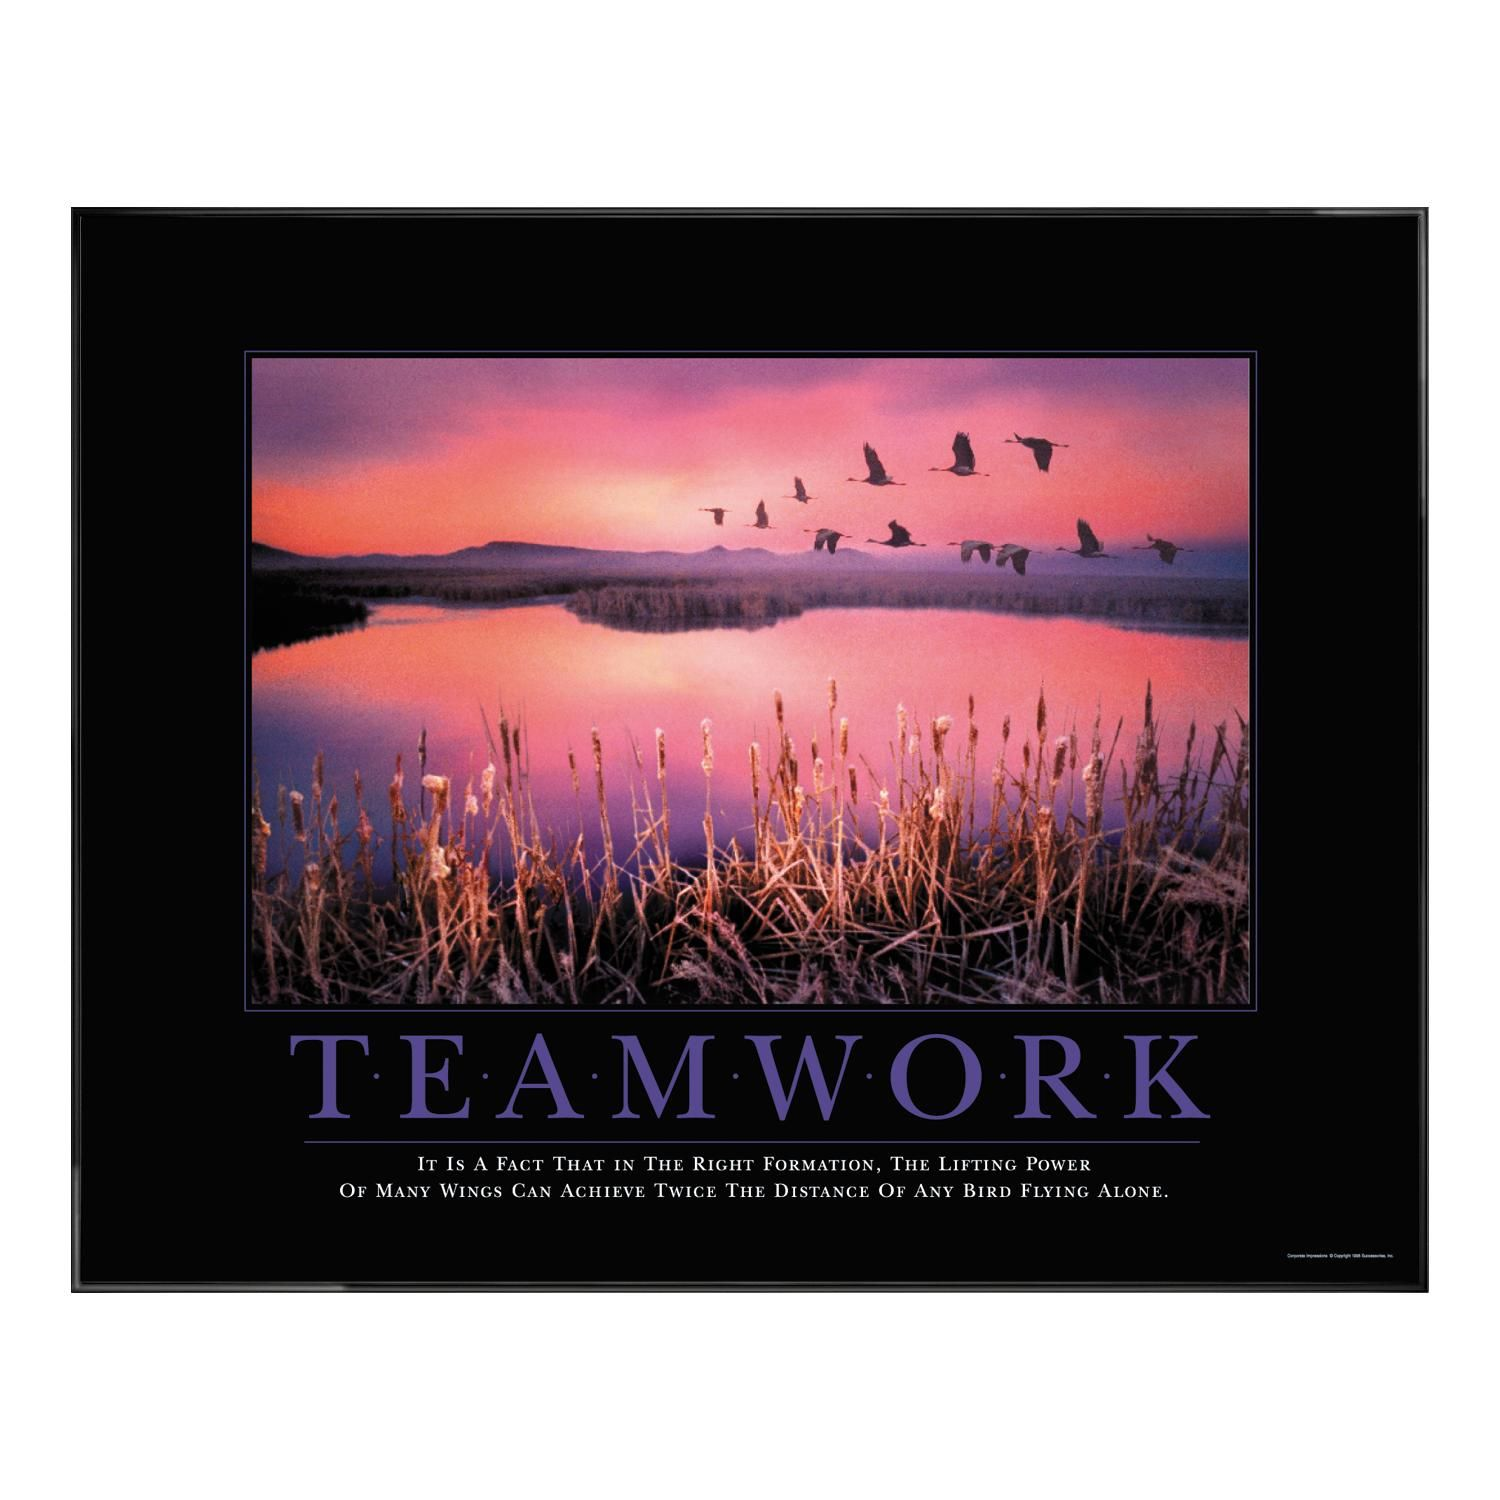 Motivational Inspirational Quotes: Teamwork Framed Motivational Print